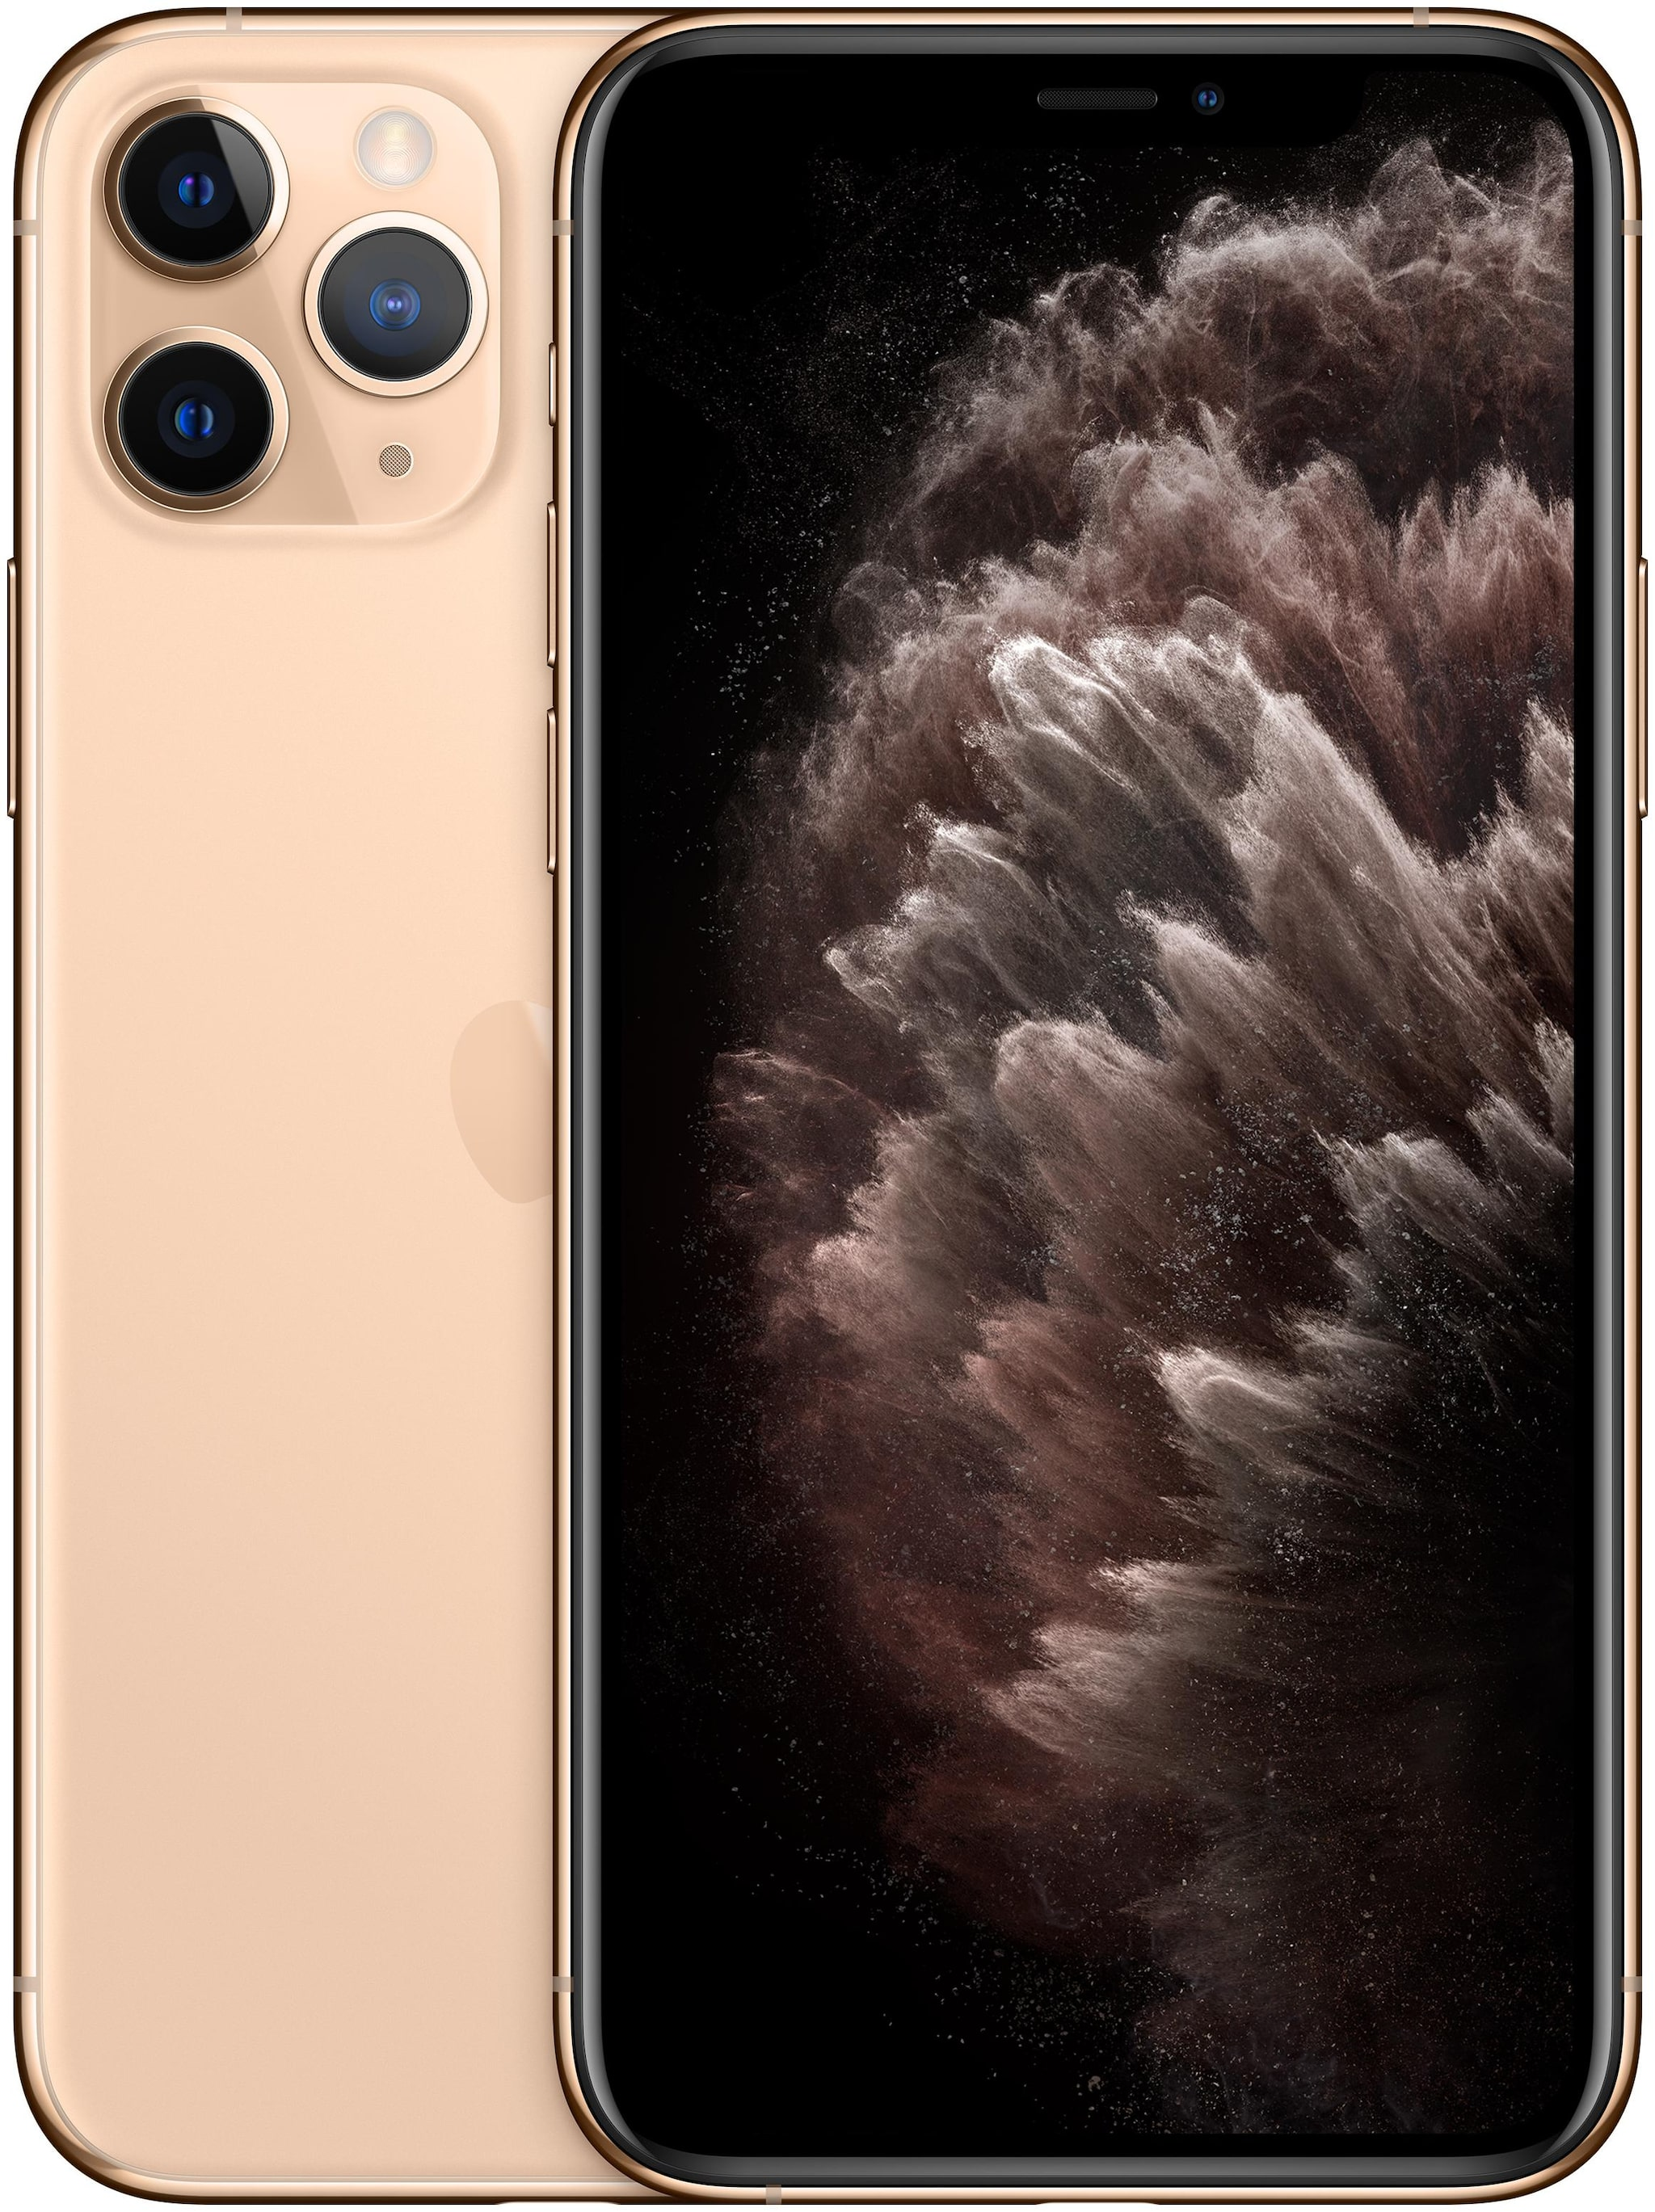 Apple iPhone 11 Pro Max (Gold, 64 GB) Review